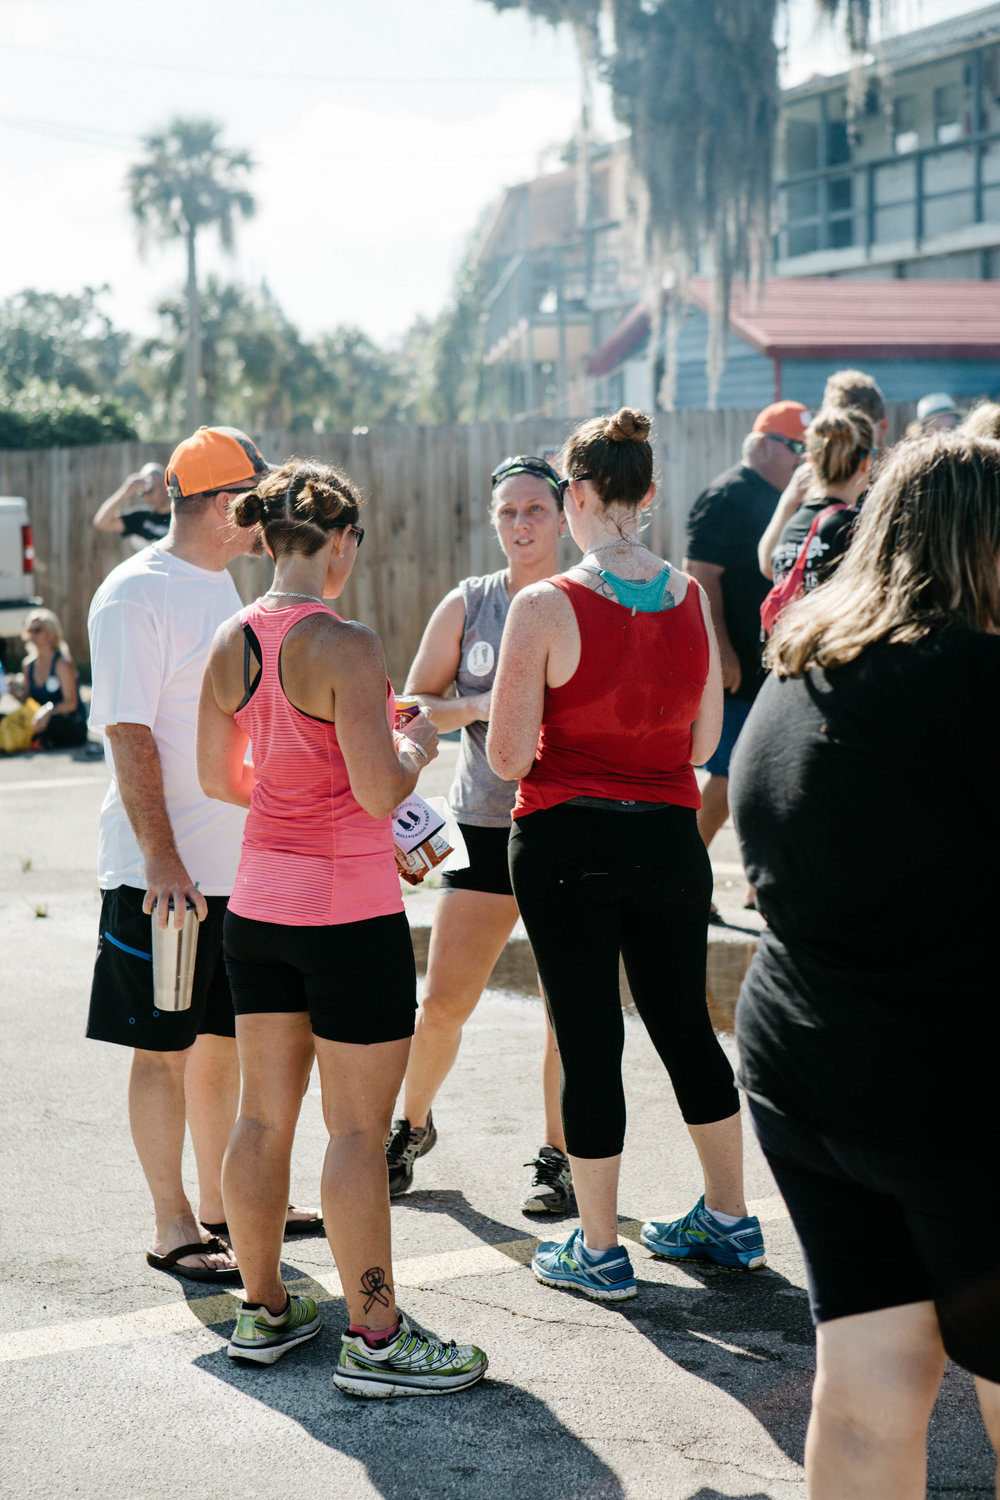 annas_foundation_manatee_run-51.jpg